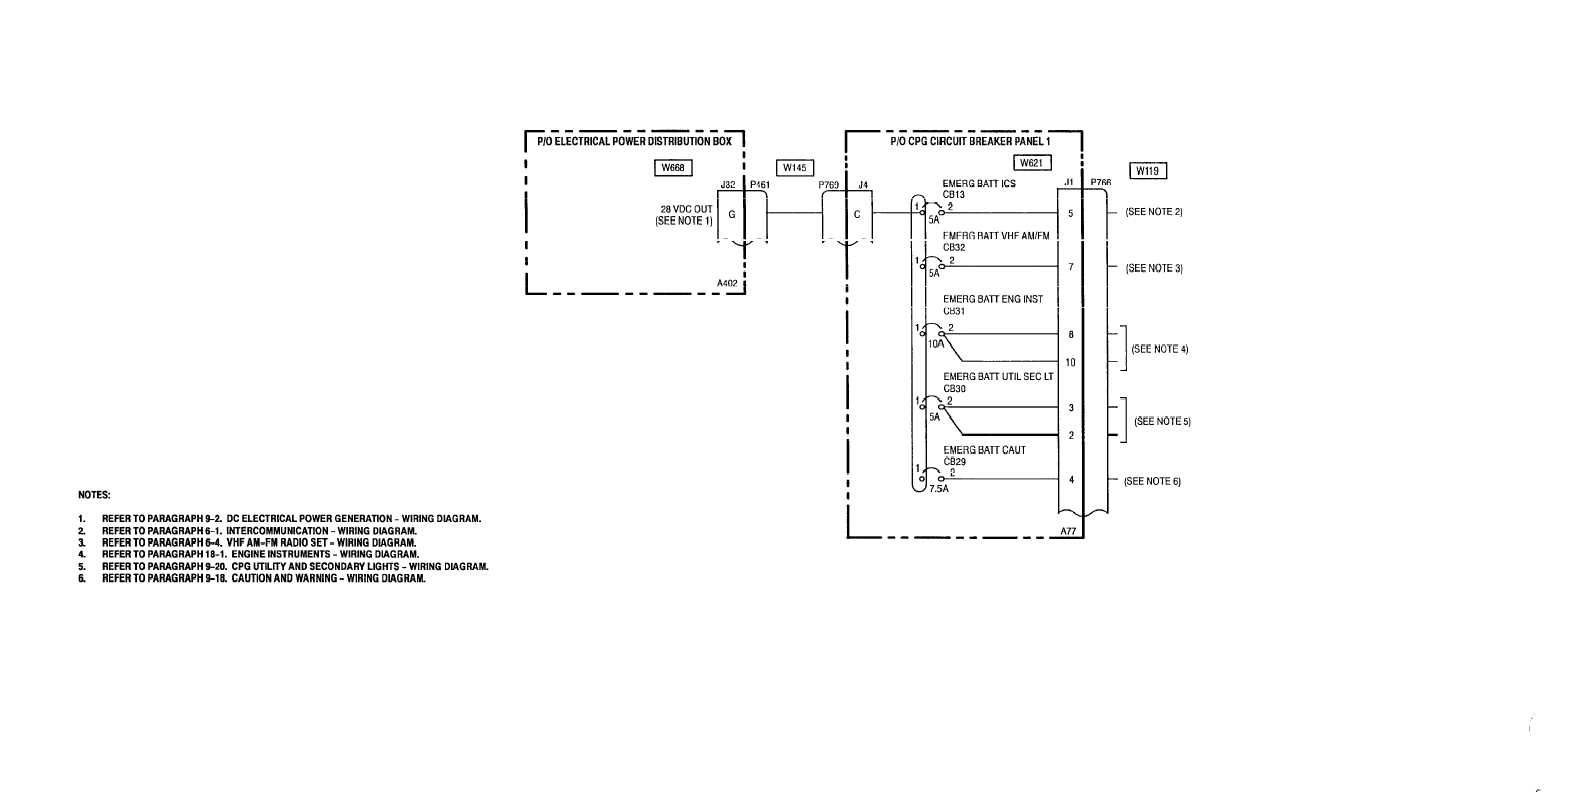 hight resolution of circuit protection dc emergency bus cpg station wiring diagram 9 1 5 sheet 1 of 1 m50 219a 9 26